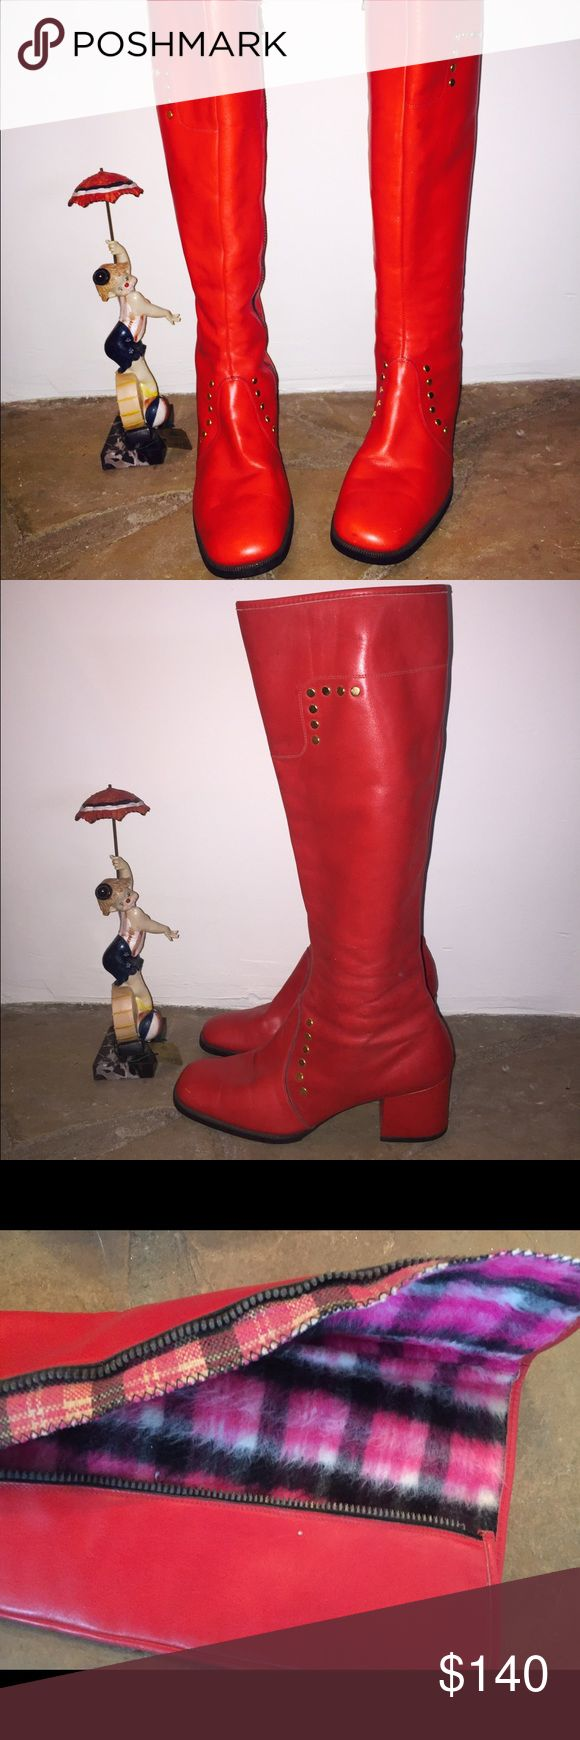 "60s Mod Red Knee High Leather Boots Zip Up Italian Red leather boots with chunky heels, Gold rivets, zip up the with a metal zipper, lined on the inside in fleece  Maker: Rolle Origin: Made in Italy Size: They are marked size 8 1/2  run 1/2 size small   10 insole 3.5"" (at the widest part of the shoe)  2.25"" Heel 15.5"" high from the back of the footbed to the top of the boot 14"" Circumference   Condition: Wonderful condition, no flaws that I can see (no drying) Vintage Shoes"